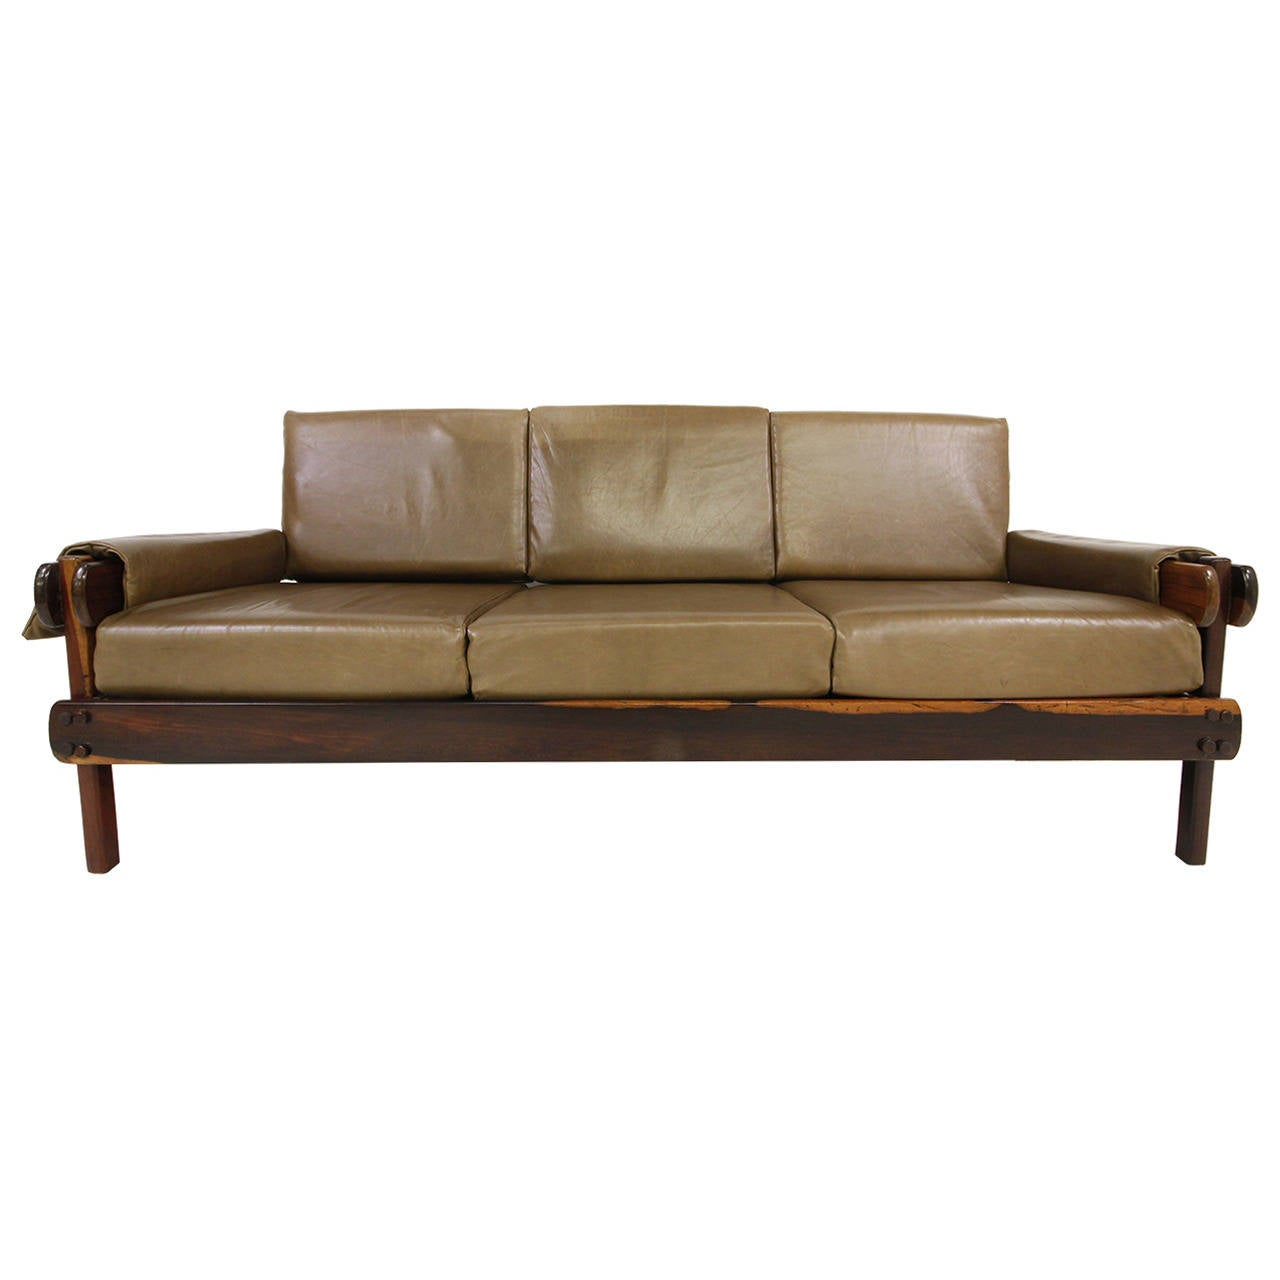 early brazilian rosewood and leather sofa in the manner of. Black Bedroom Furniture Sets. Home Design Ideas